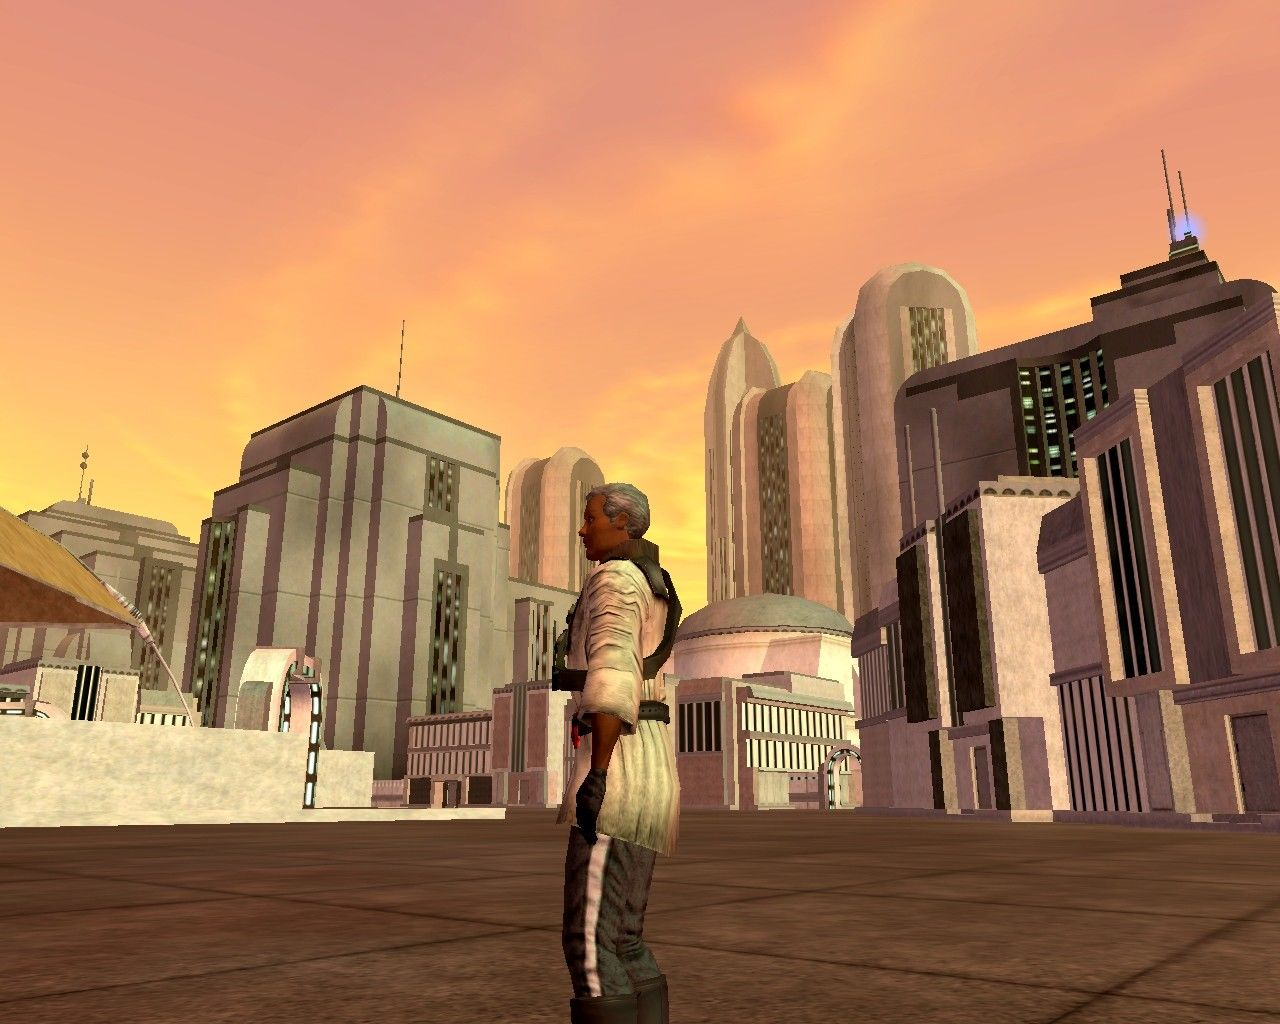 Star Wars: Galaxies - An Empire Divided Windows Downtown Coronet, at the marketplace near the Medical Center.